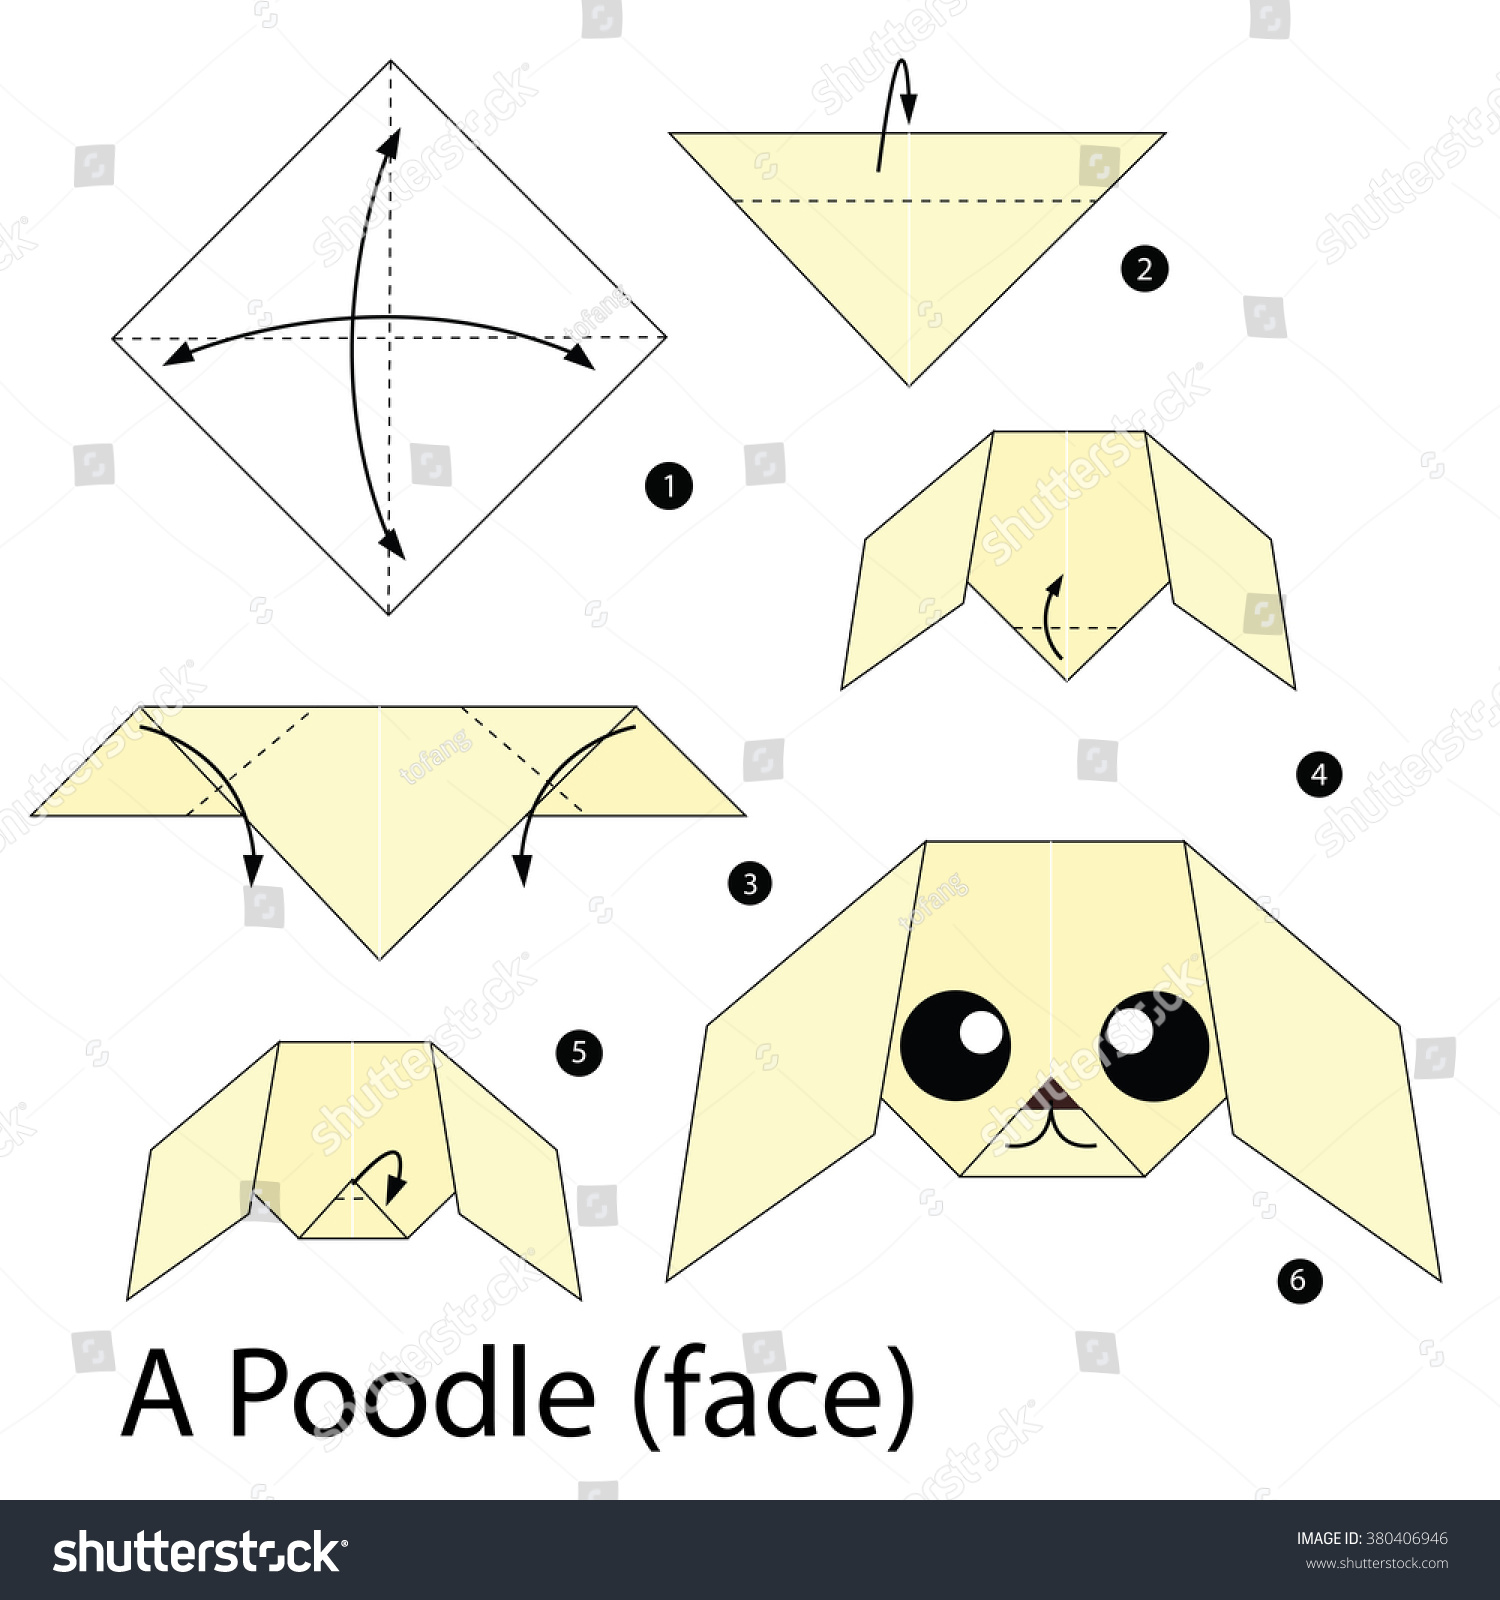 Easy Origami Poodle Face Instructions You Can Fold Easily | 1600x1500